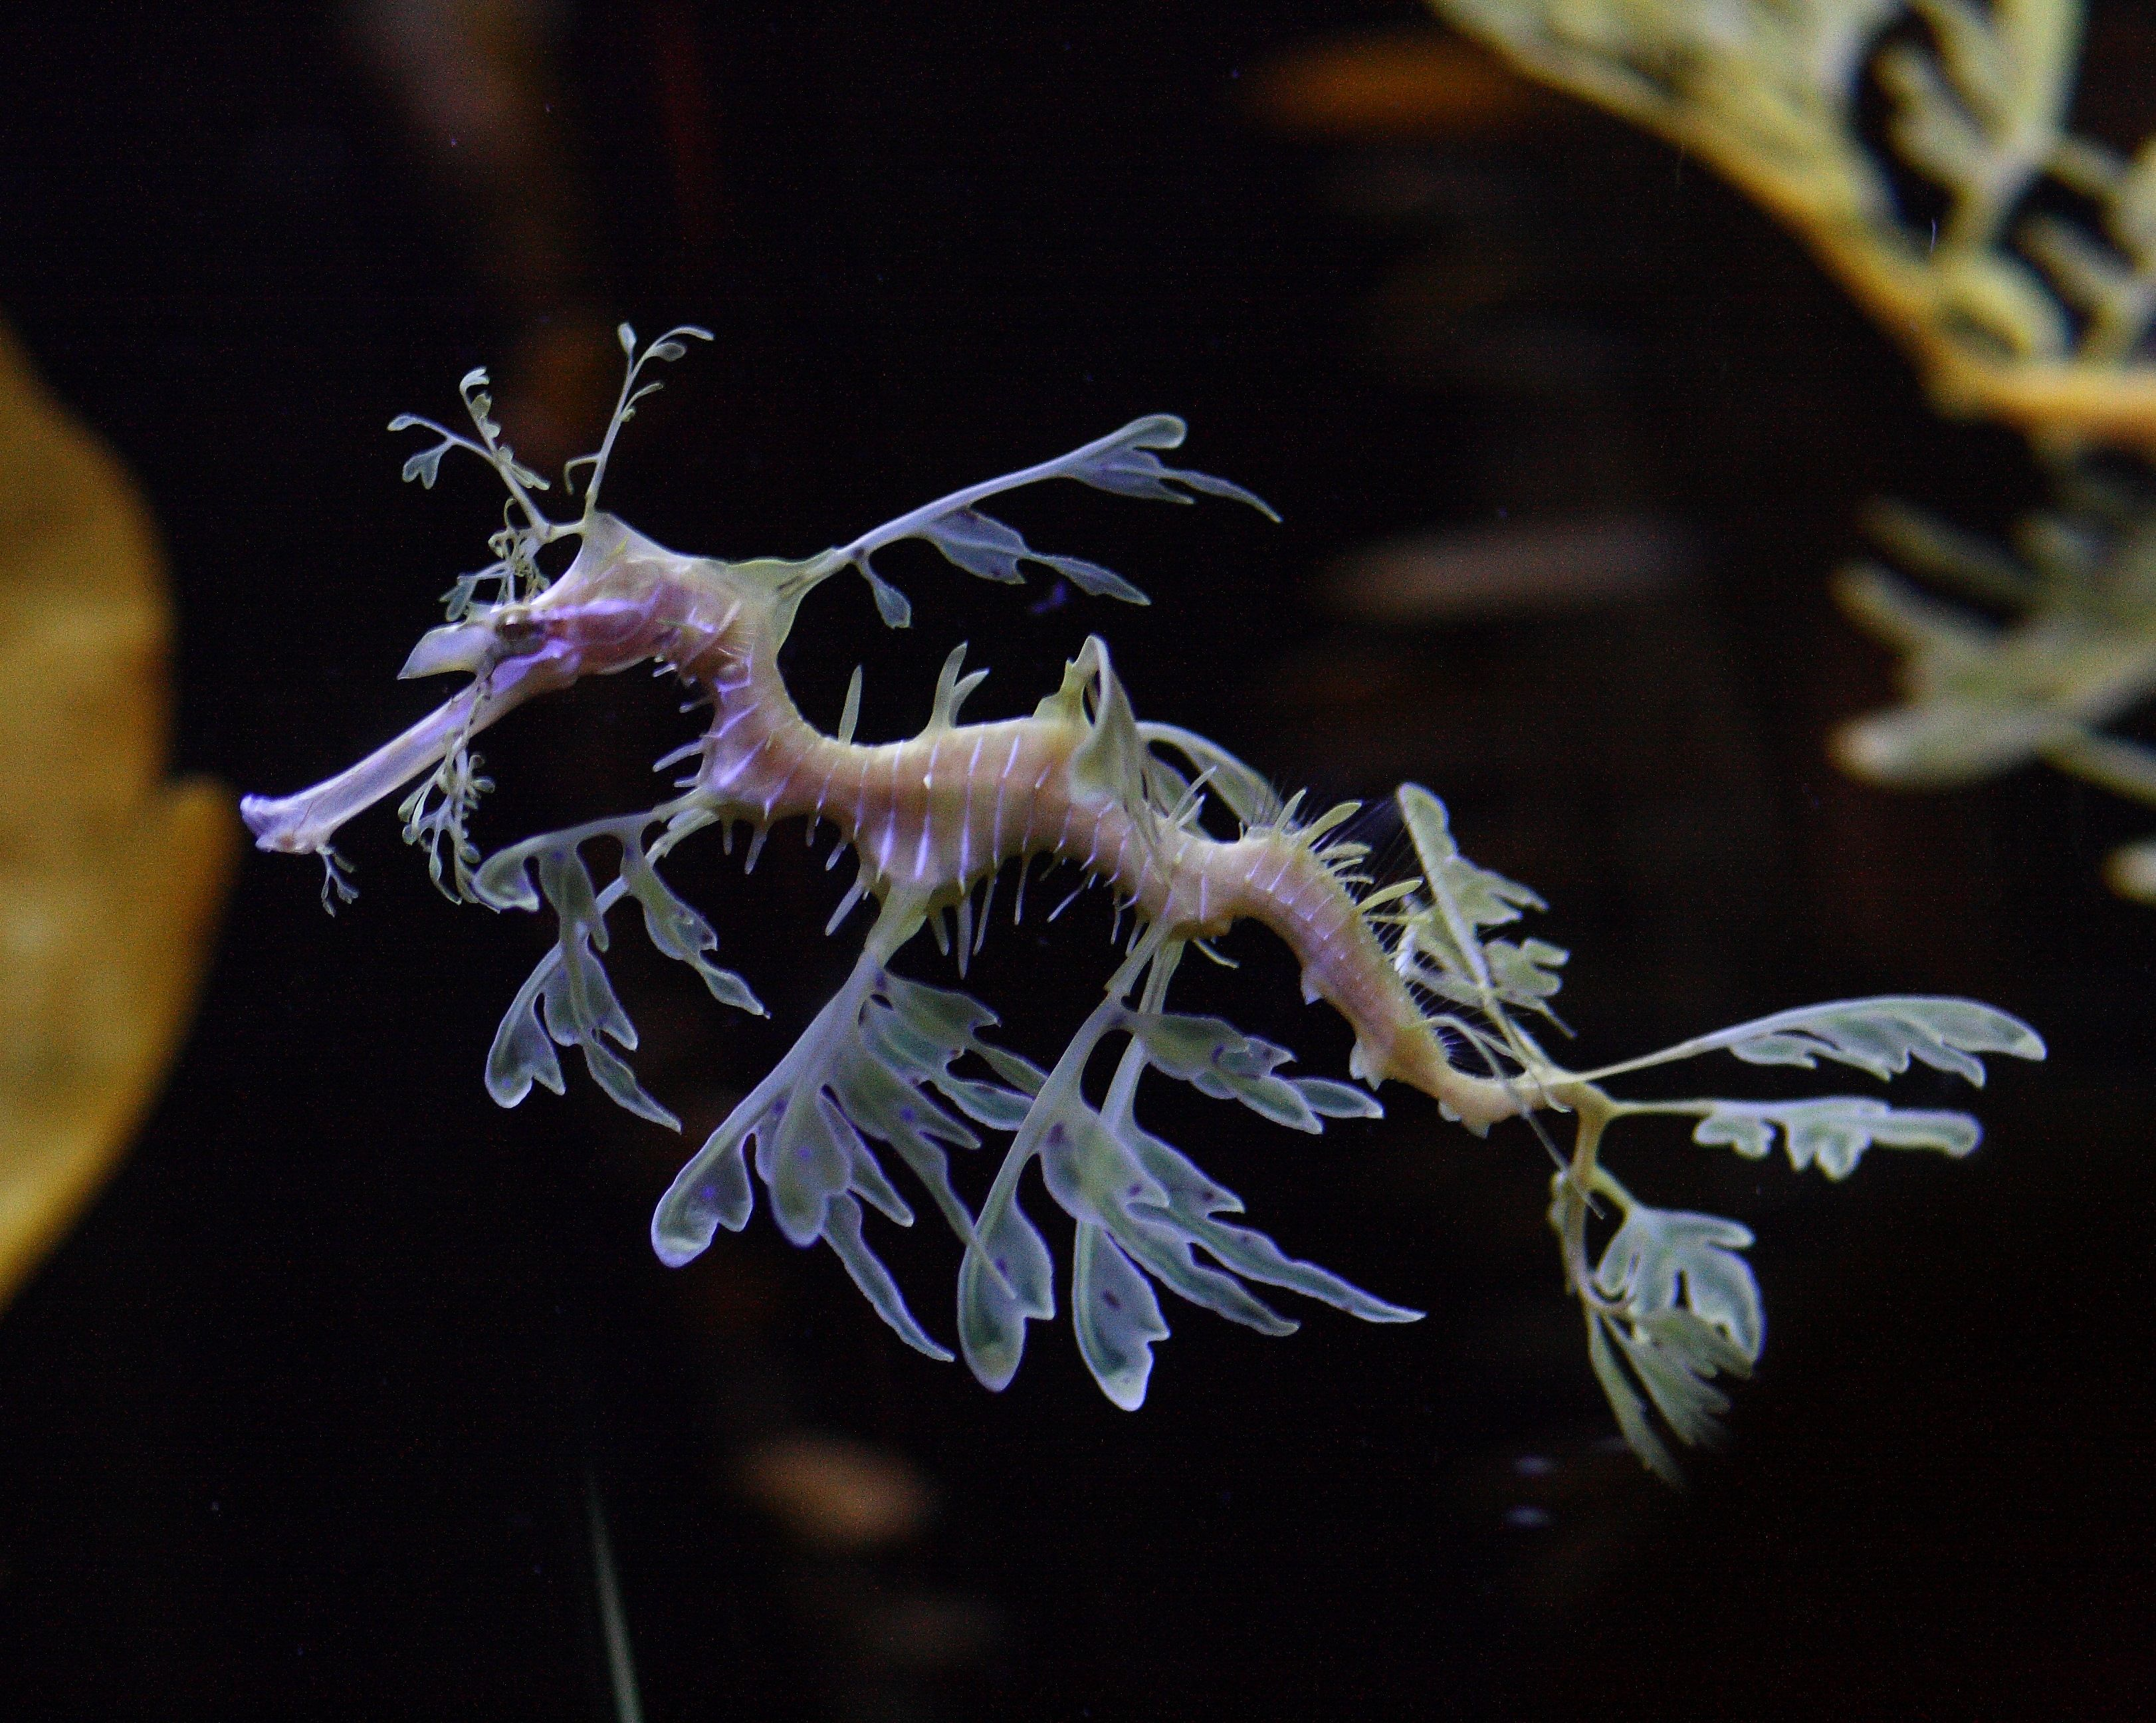 Perfect sea dragon picture image gallery on animal picture perfect sea dragon picture image gallery on animal picture society voltagebd Choice Image